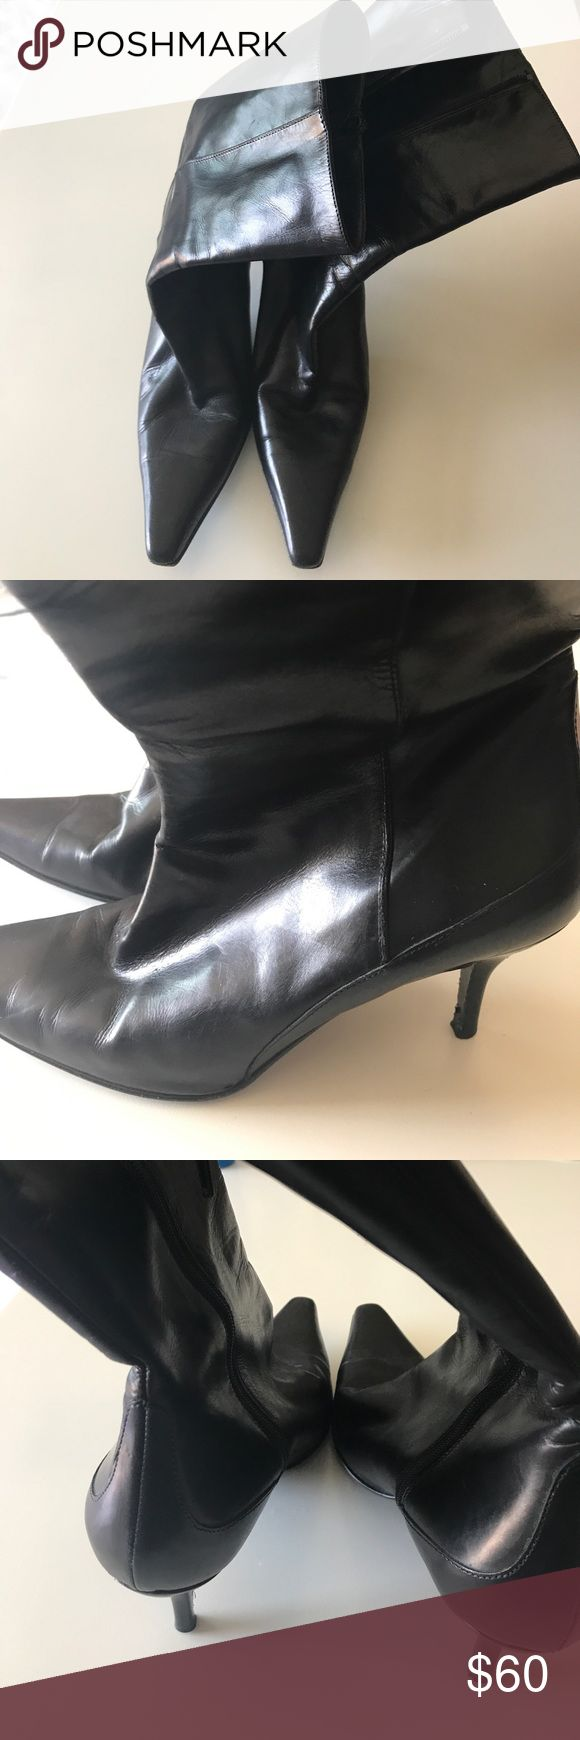 Cole Haan Boots 9.5 🌸 Black soft leather Cole Haan boots. Made in Italy. Heel is little more than 2.5 inches. Length of boot comes about four inches above the ankles. Inner zipper. Has few scuffs around toe of the shoe. Great condition otherwise 💁🏼 Cole Haan Shoes Heeled Boots